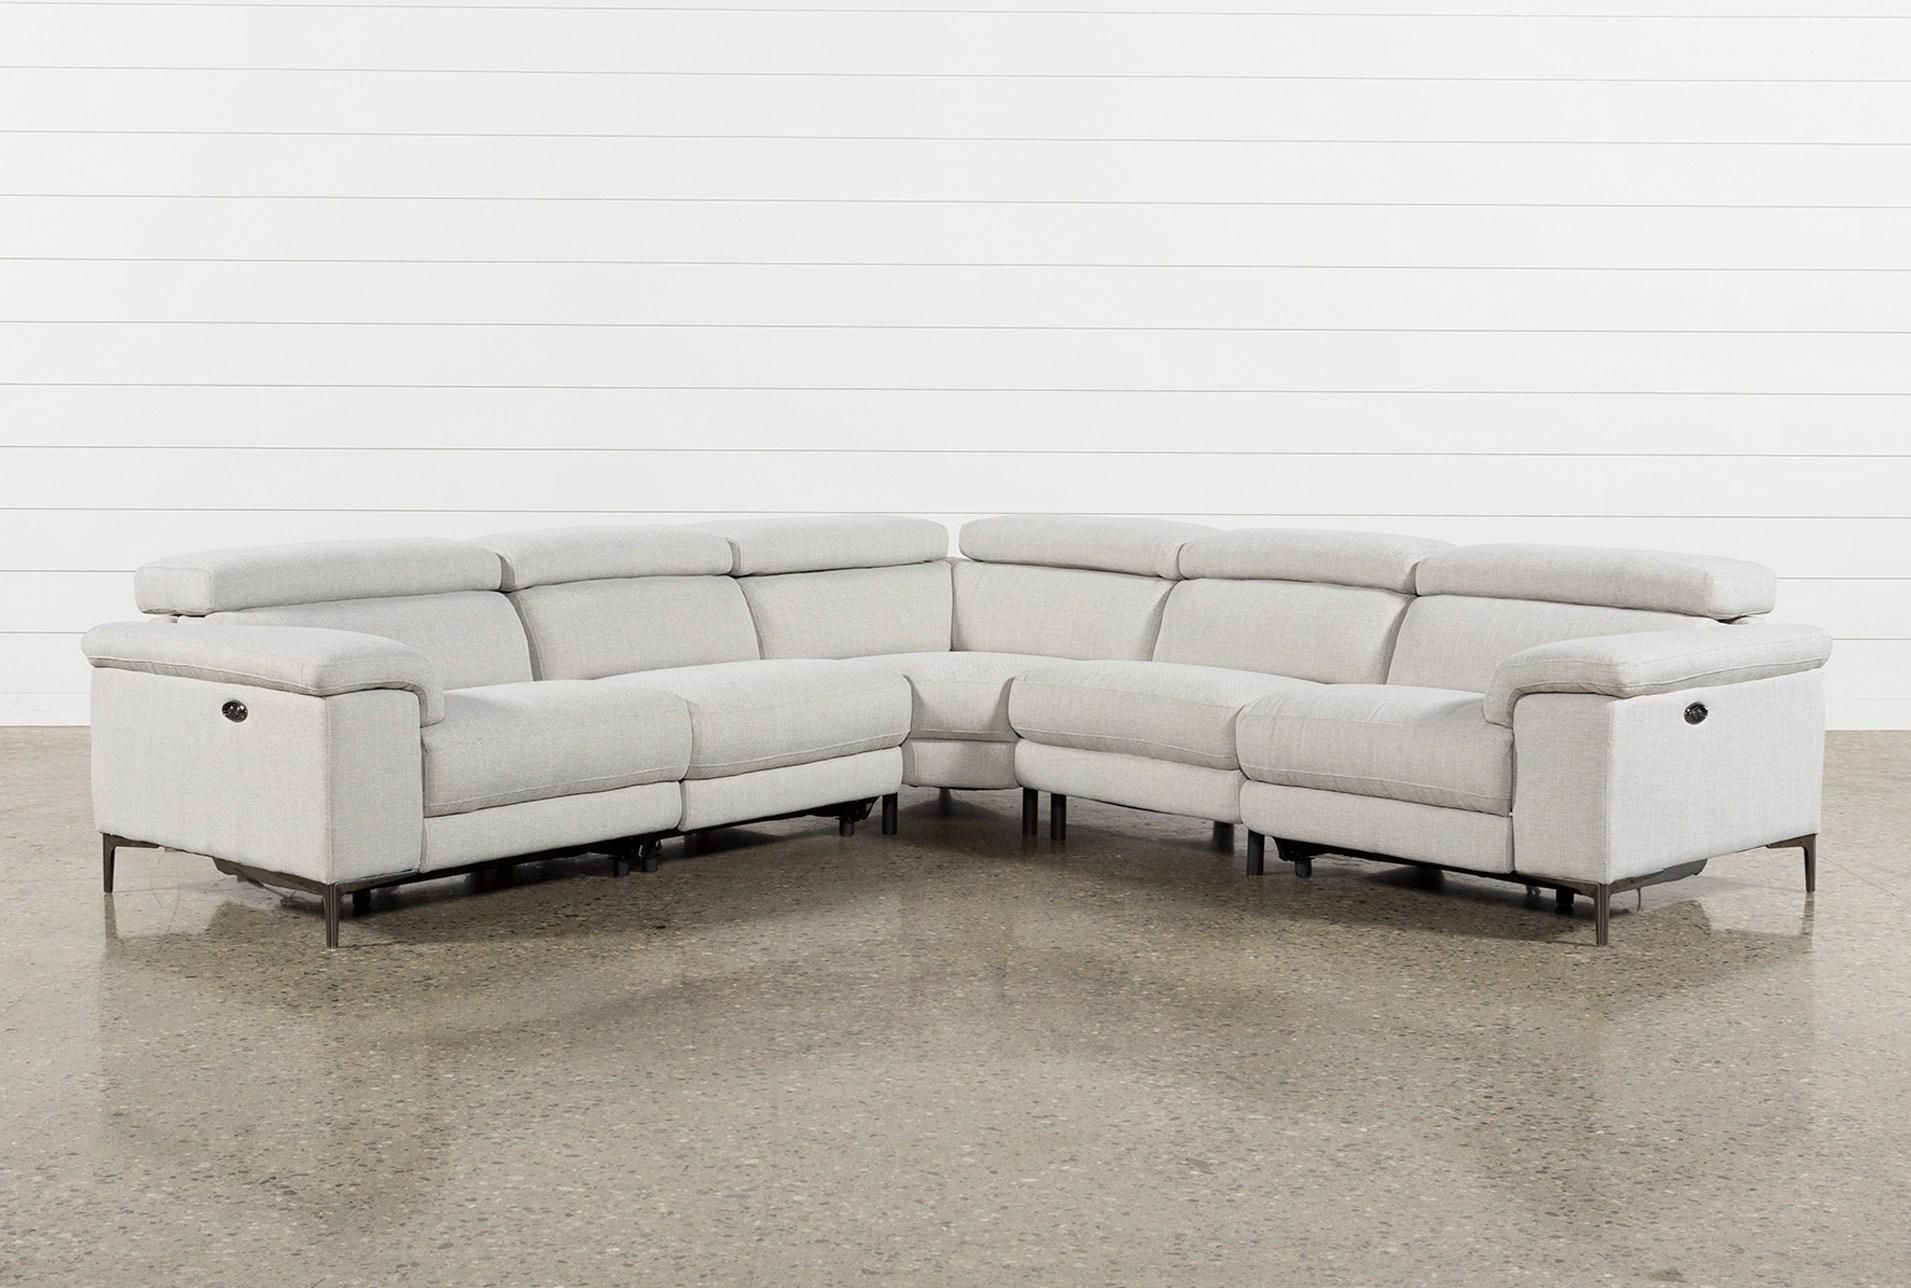 Super Talin Linen Ii 5 Piece Power Reclining Sectional Sofa Caraccident5 Cool Chair Designs And Ideas Caraccident5Info